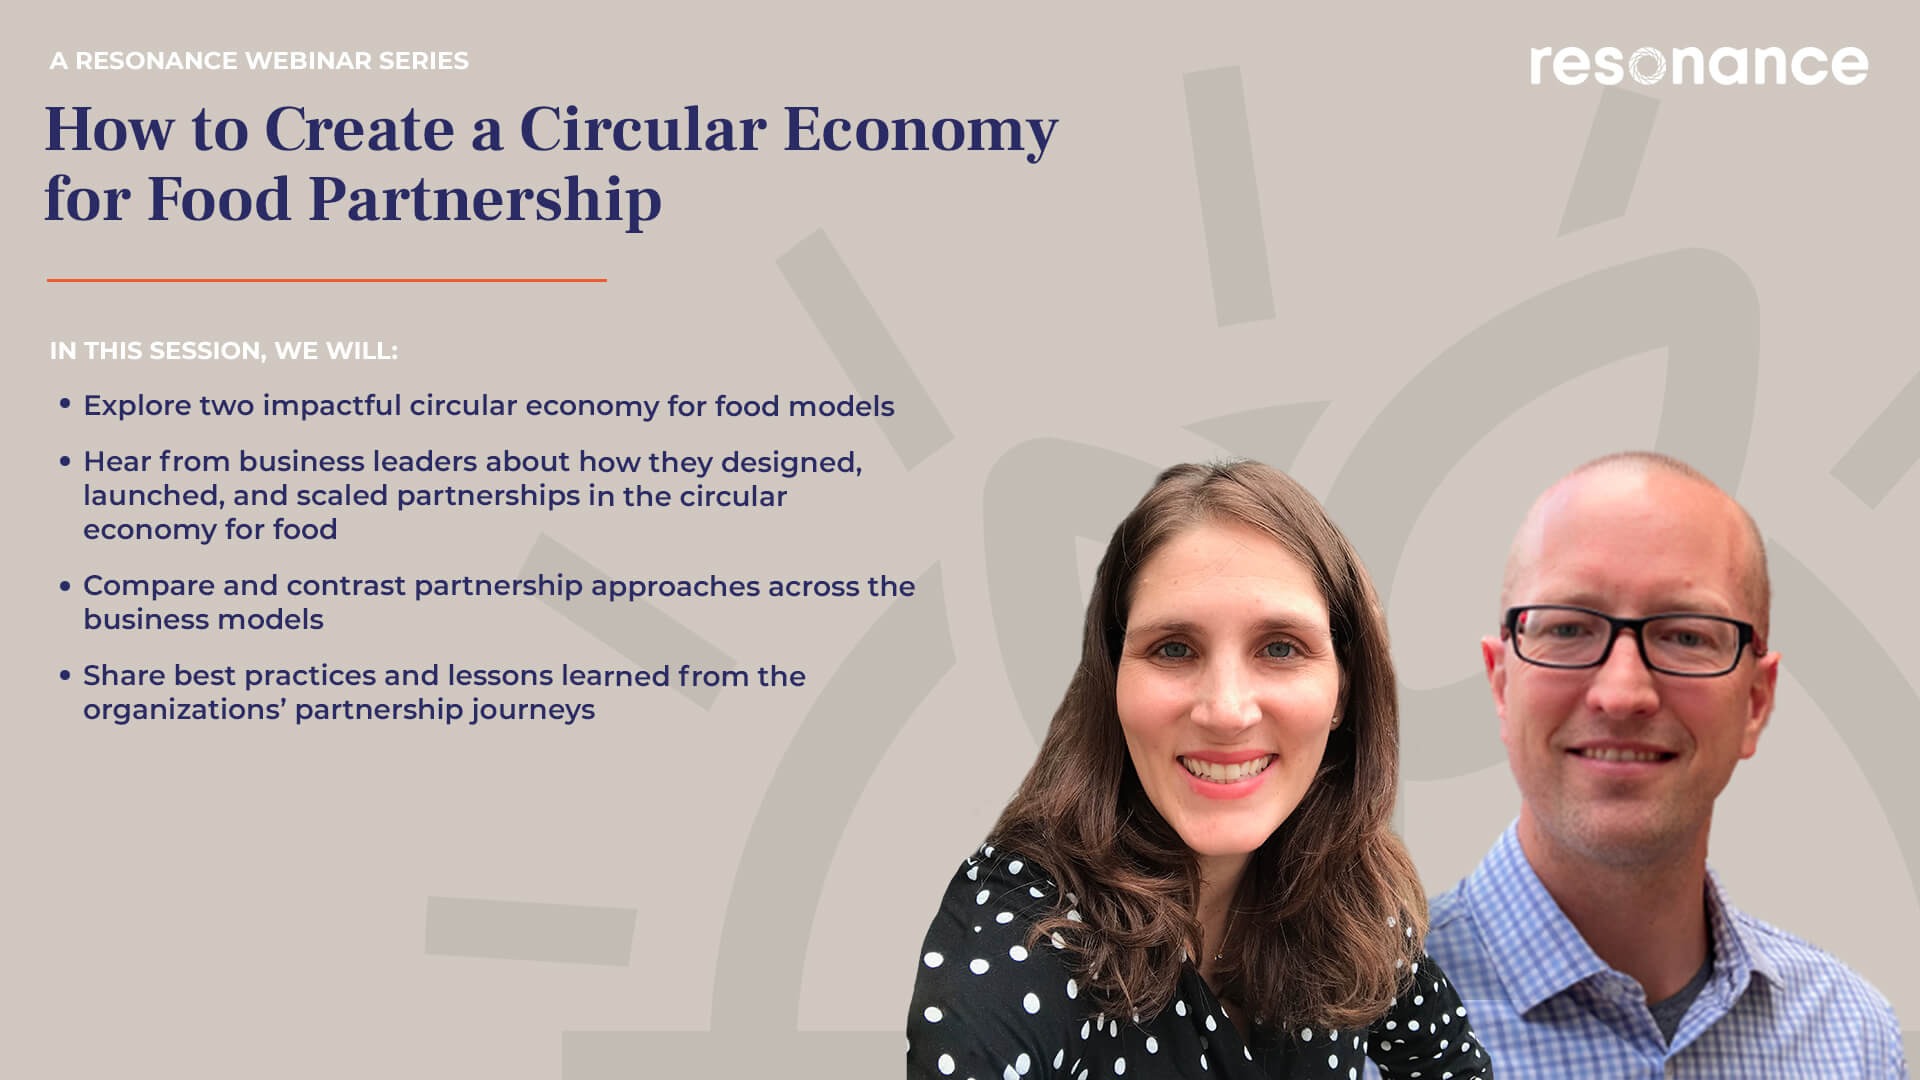 Episode 2- How To Create a Circular Economy for Food Partnership